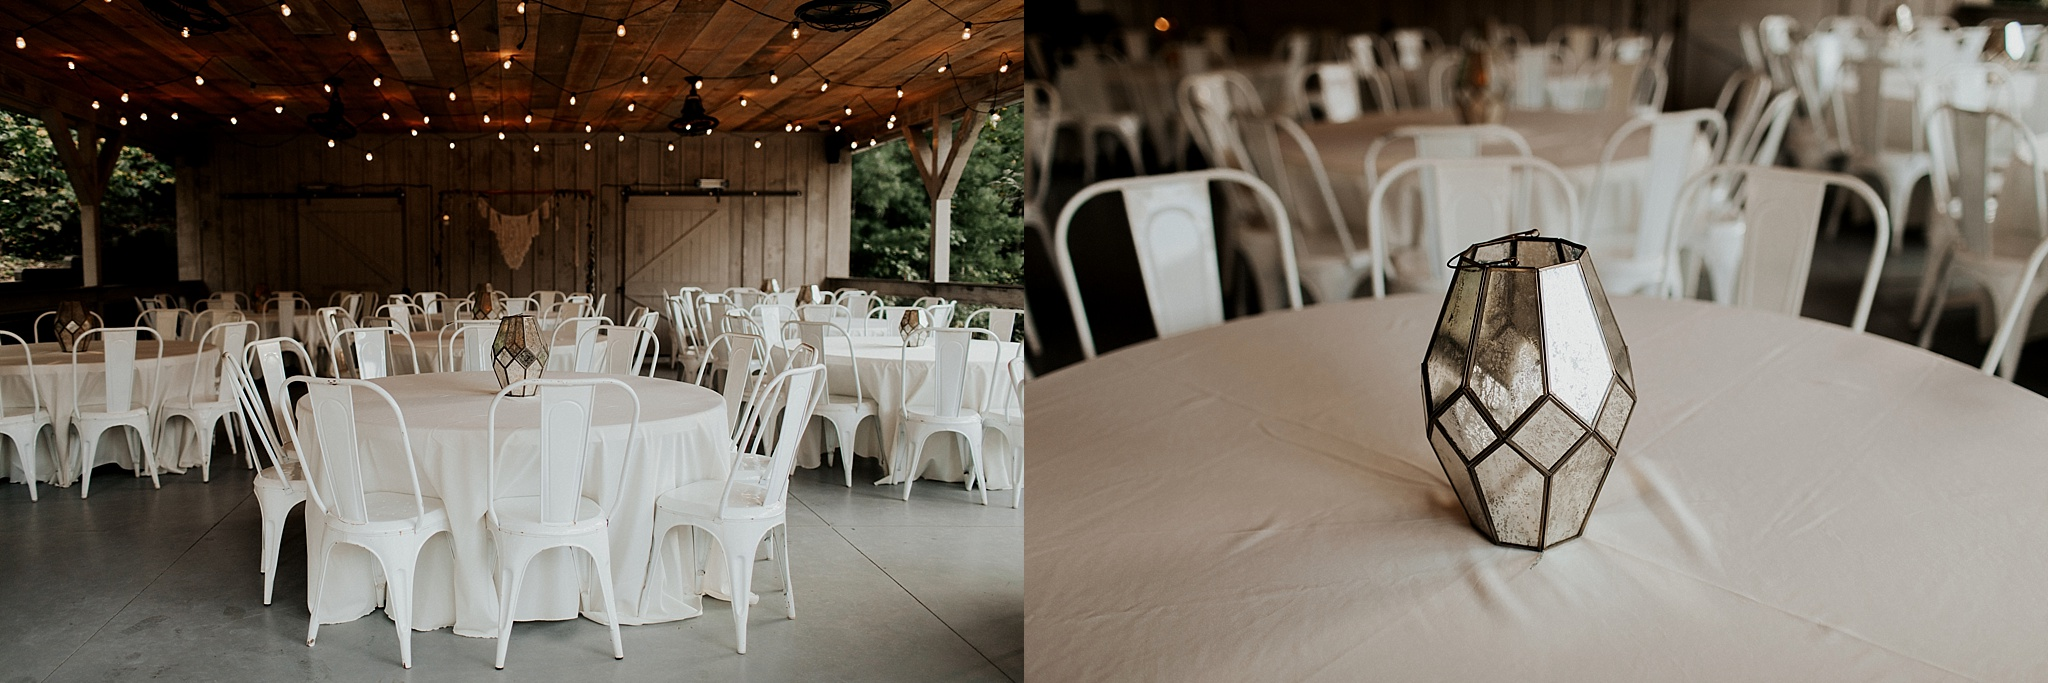 sugarboo_farms_intimate_mountain_wedding072.JPG